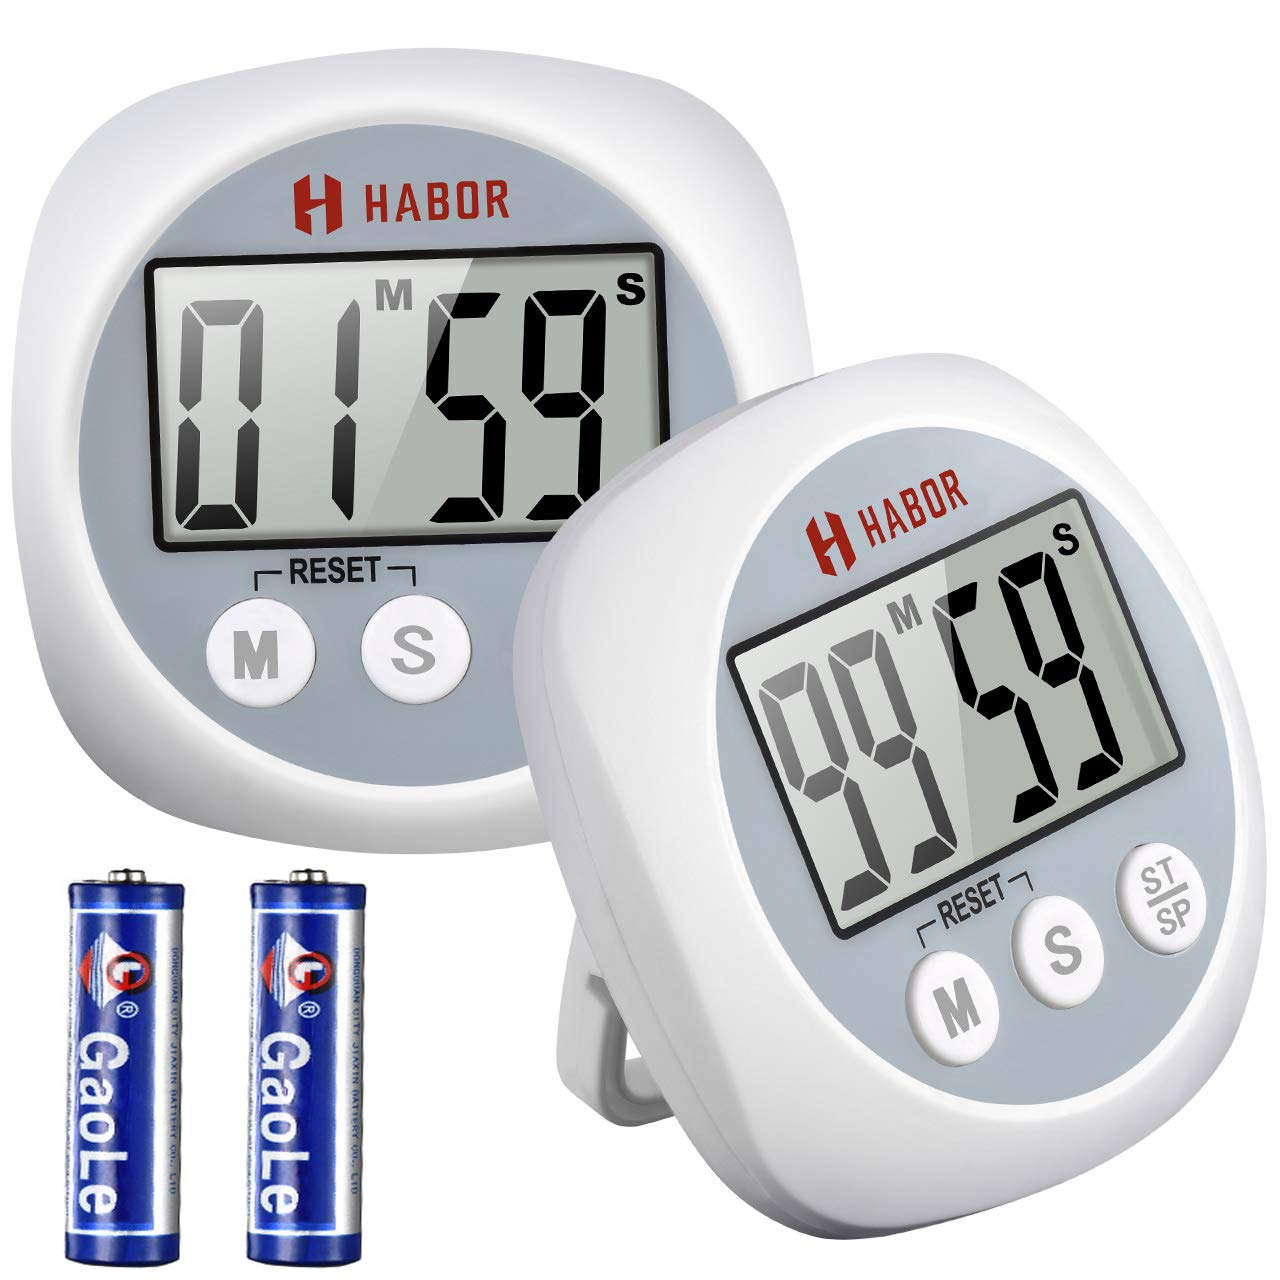 Habor 2 Pack Cooking Timers, Large Display Digital Kitchen Timer with Loud Beep Alarm, Strong Magnet Second Minute Count up & Countdown Timer for Cooking Baking Sports Game Office (Batteries Included) HPHBCP108AH